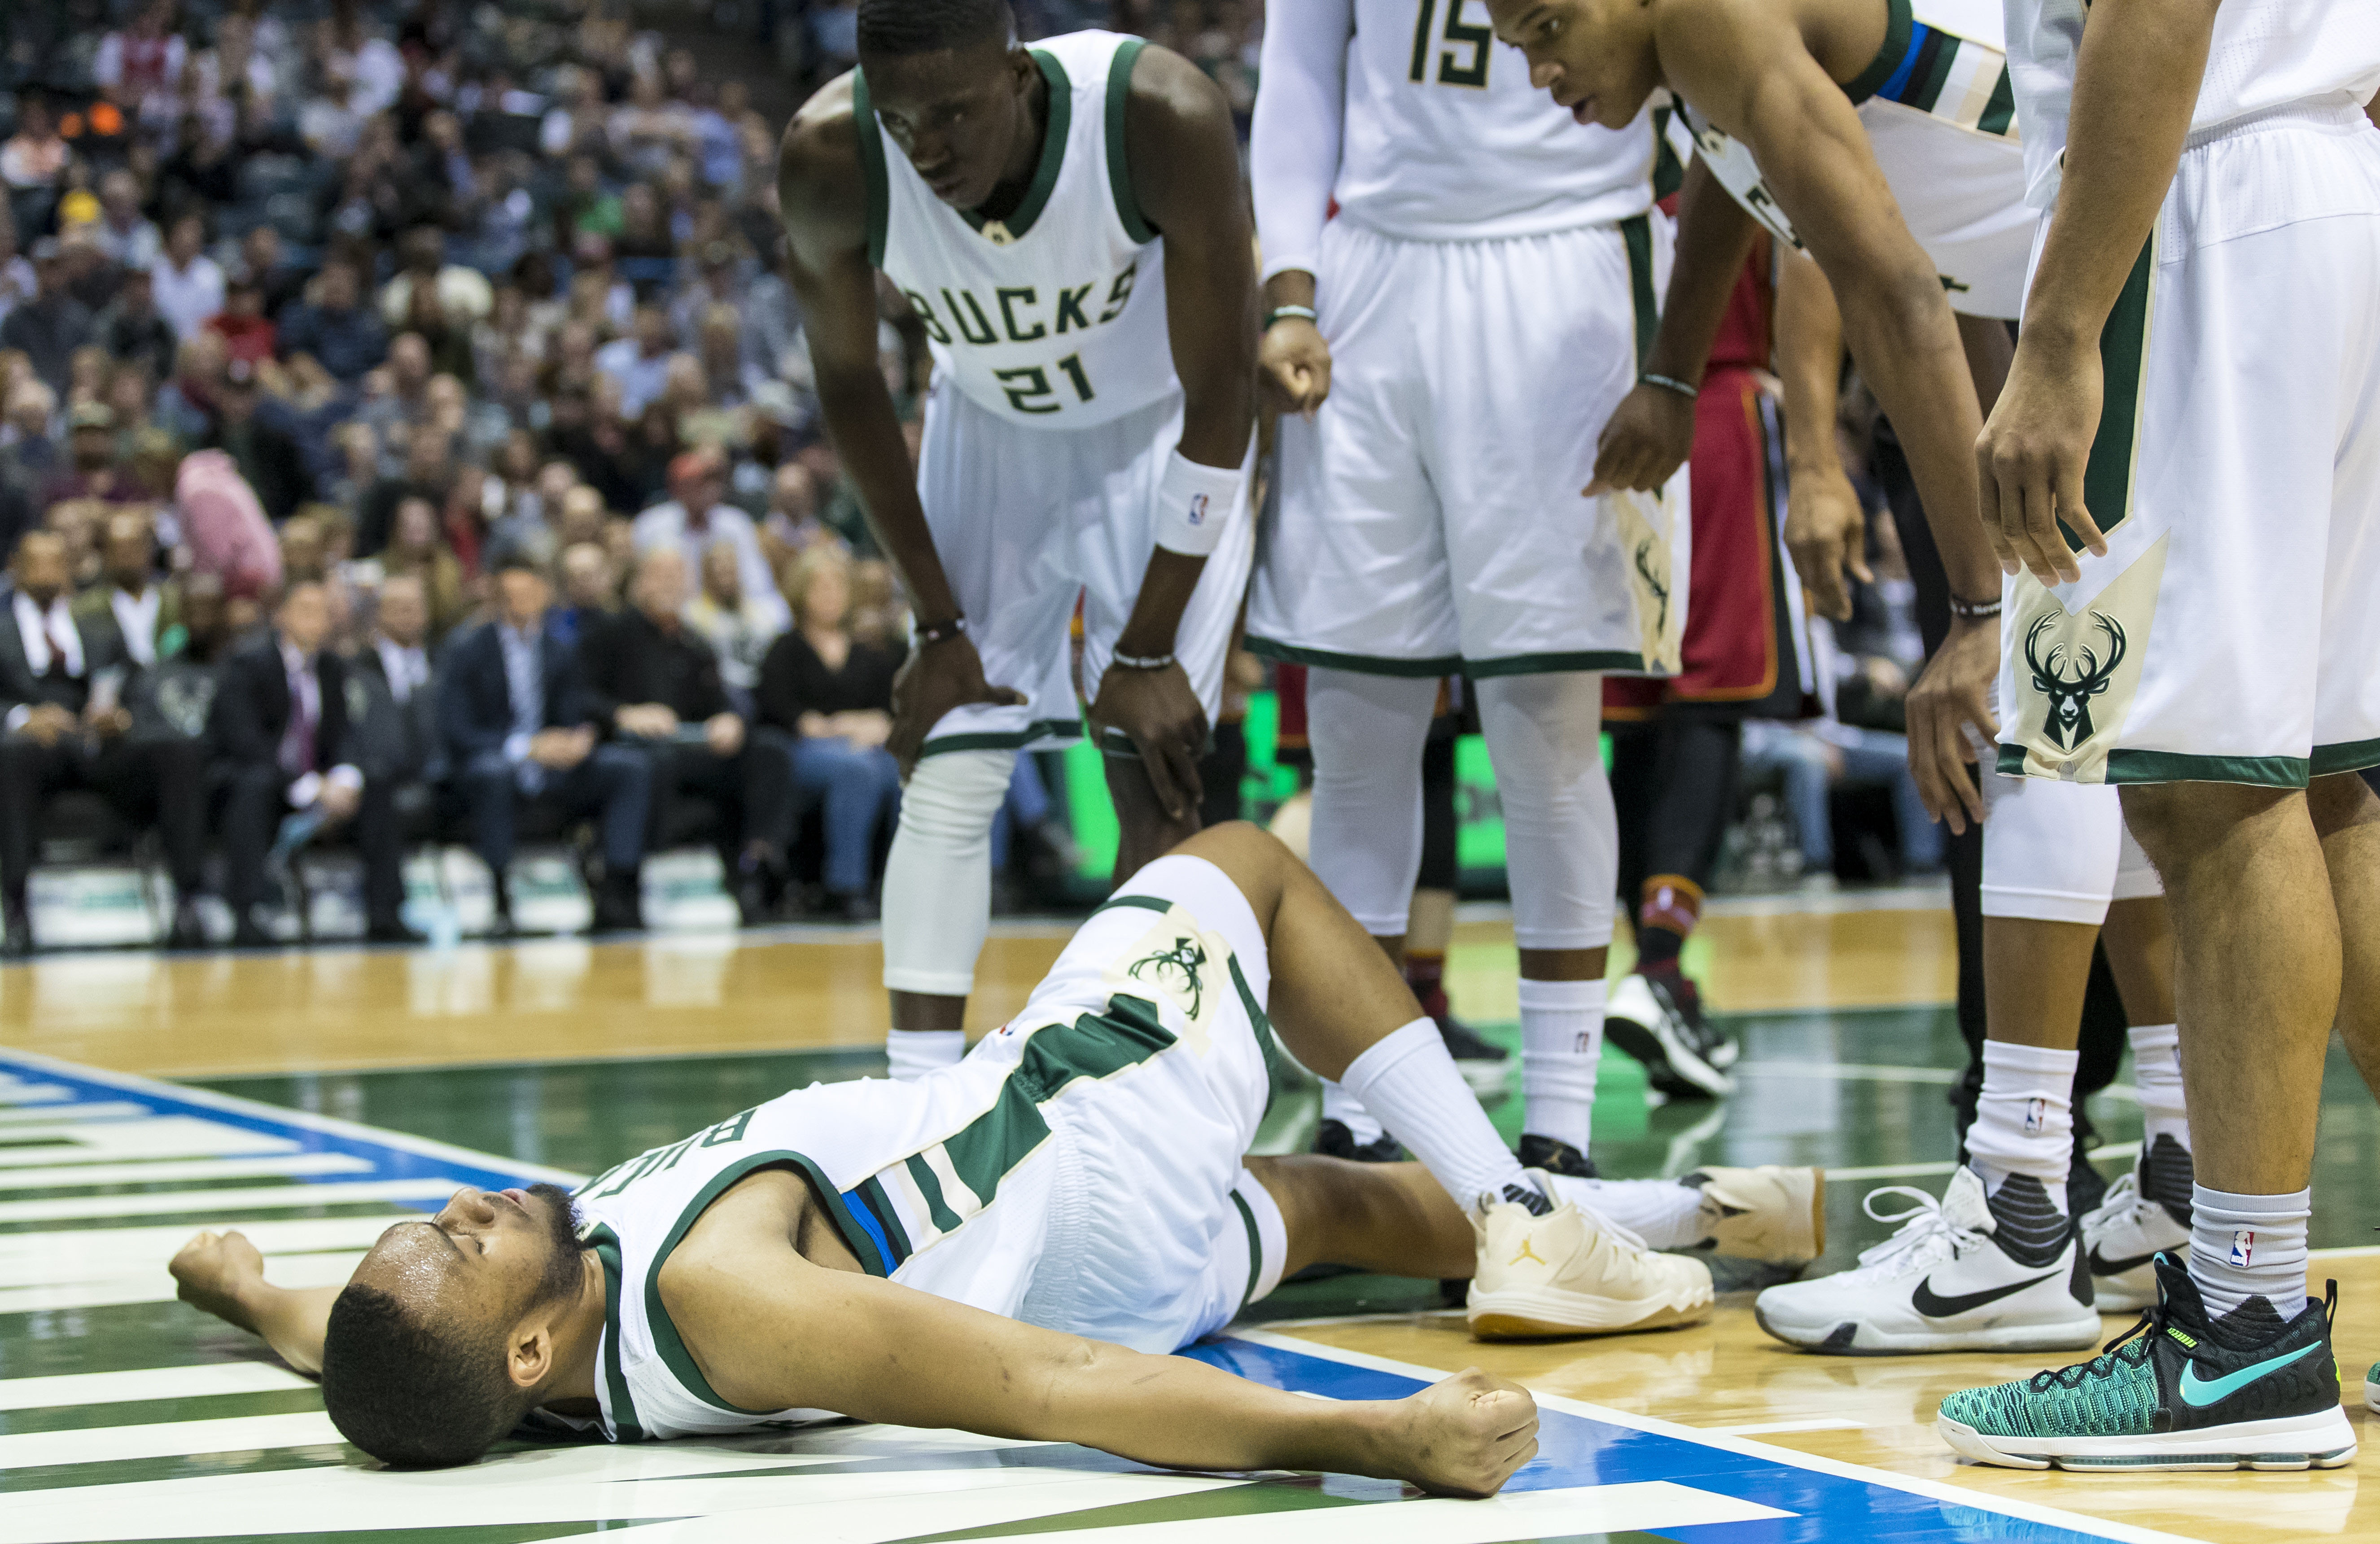 Feb 8, 2017; Milwaukee, WI, USA; Milwaukee Bucks forward Jabari Parker (12) lays on the court surrounded by teammates after being injured during the third quarter against the Miami Heat at BMO Harris Bradley Center. Mandatory Credit: Jeff Hanisch-USA TODAY Sports